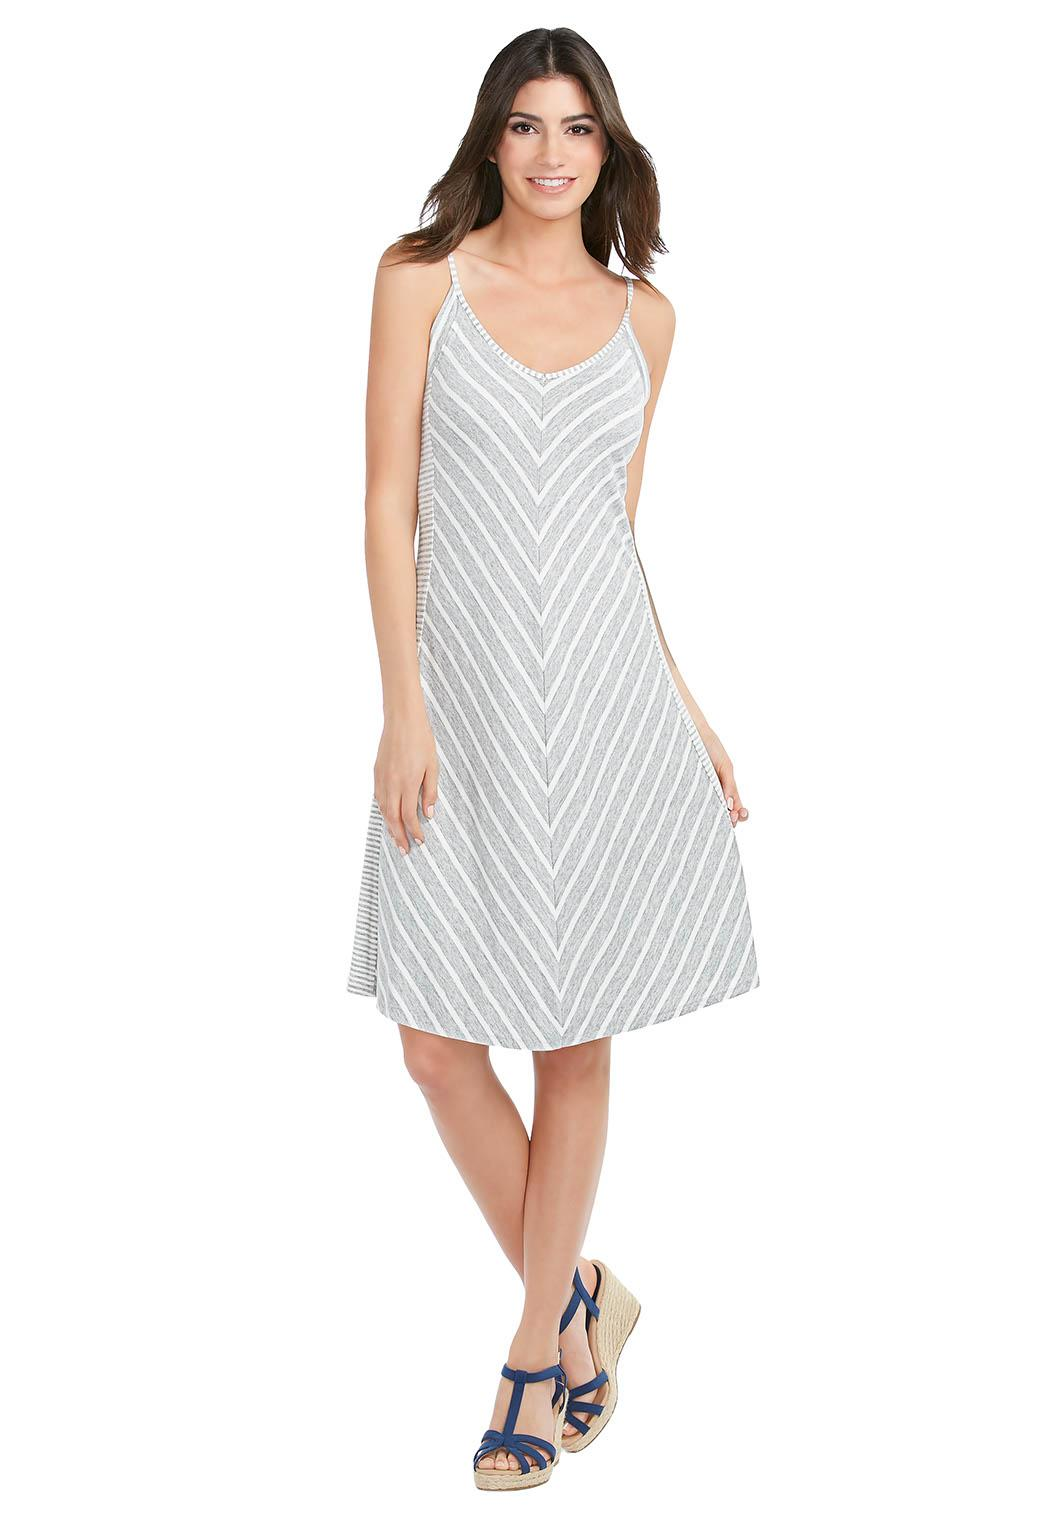 Catofashions.com Dresses Chevron Striped Dresses